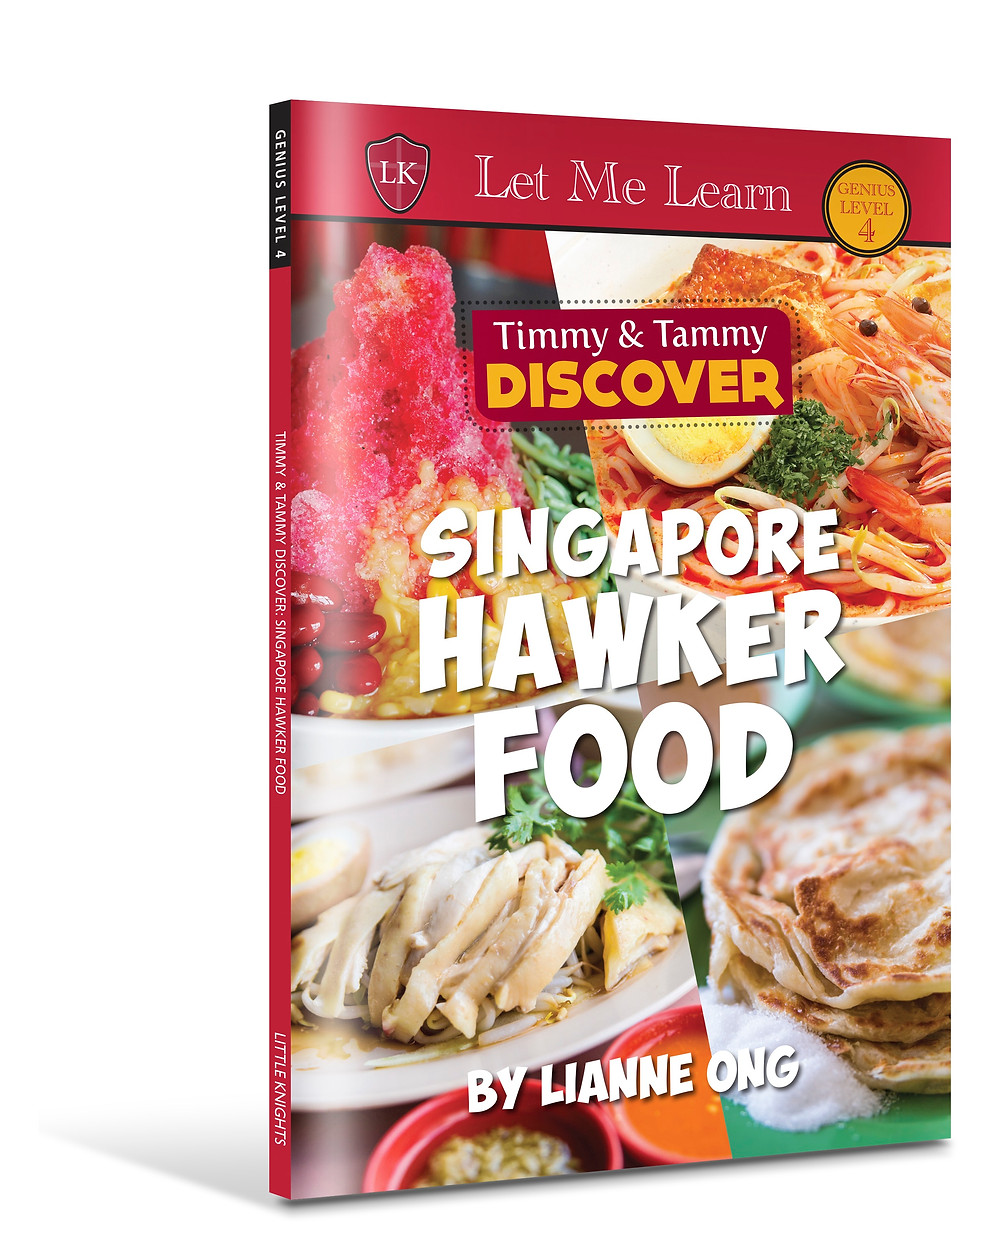 Singapore Hawker Food by Lianne Ong